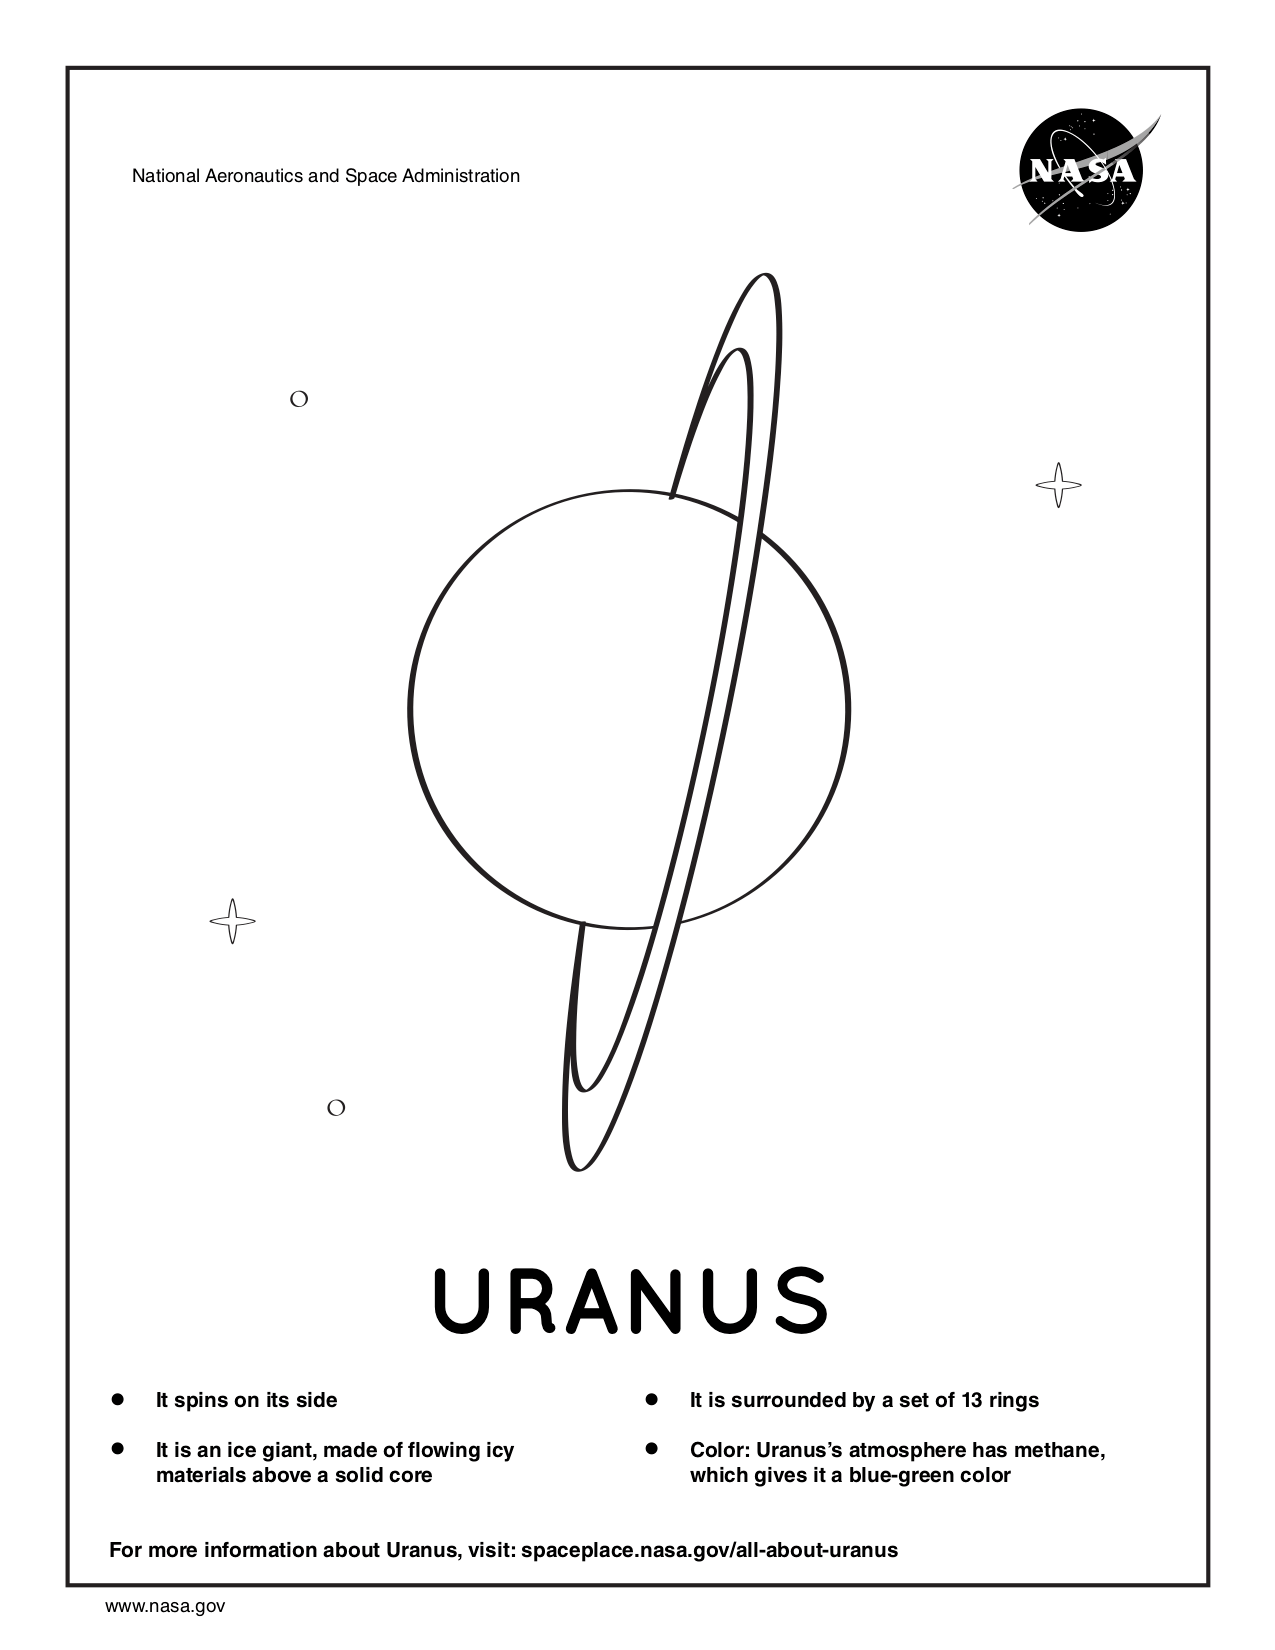 Coloring page for Uranus.